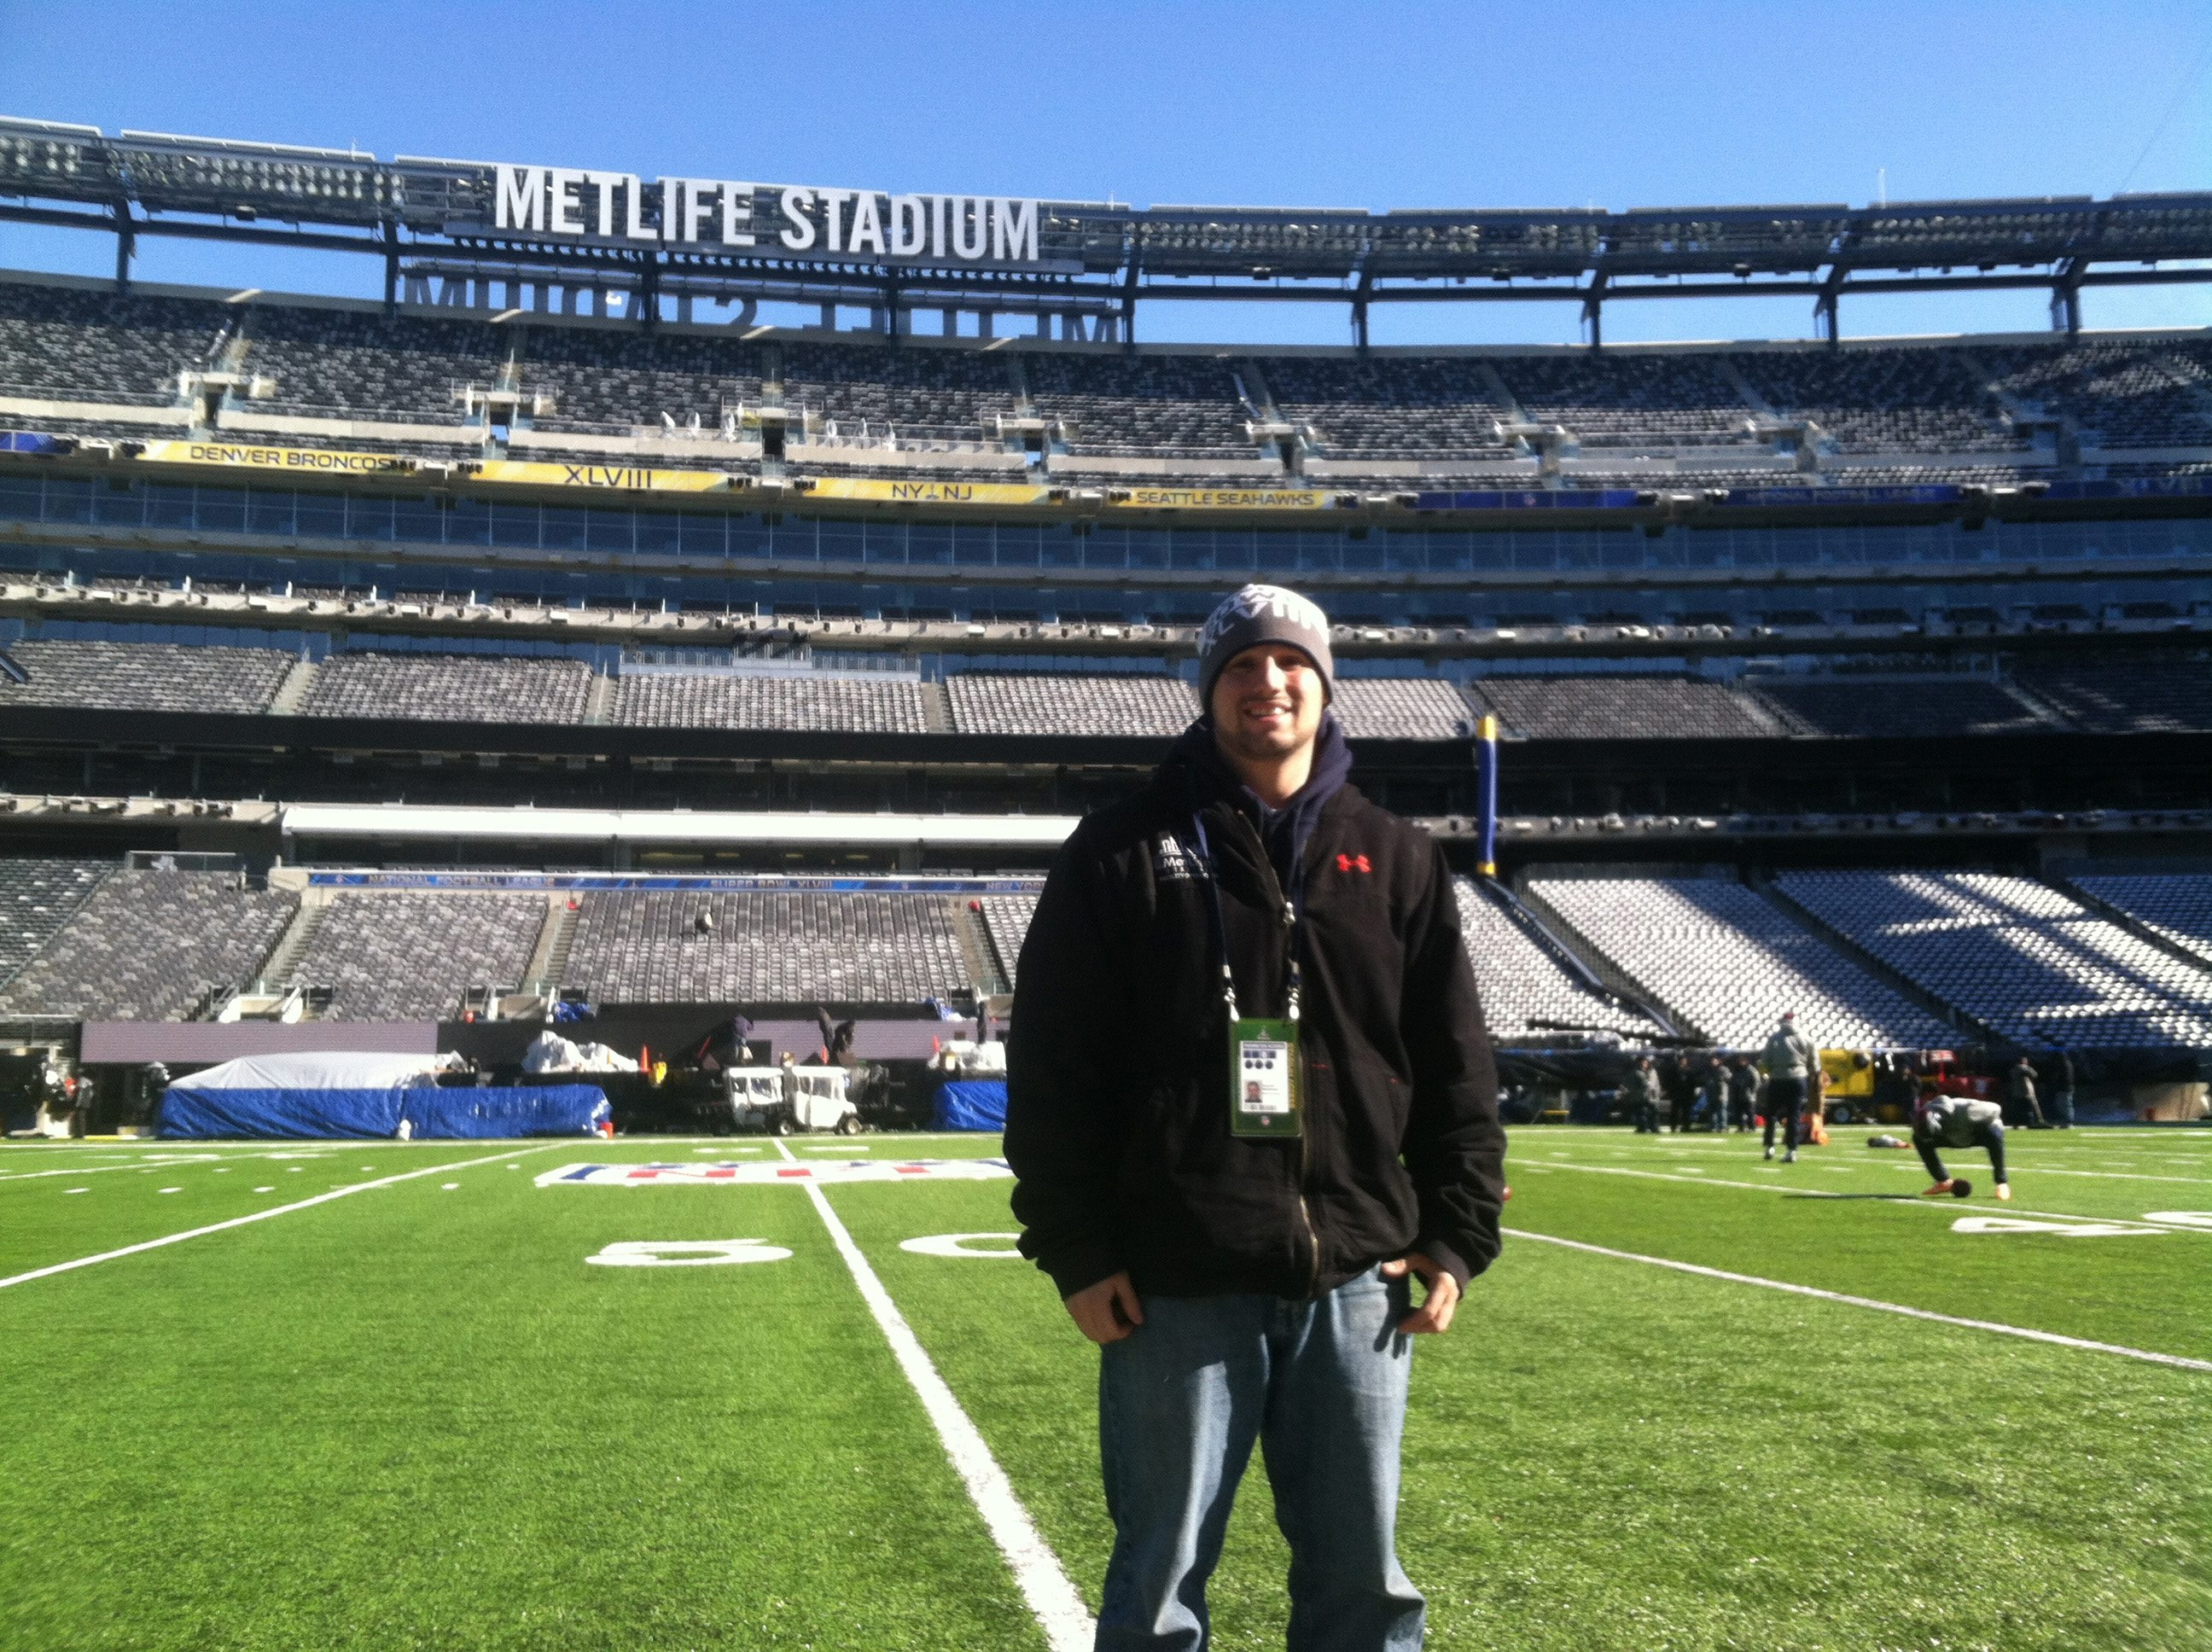 Hamburg native Stephen Sansonese is manager of field and grounds at MetLife Stadium in East Rutherford, N.J.